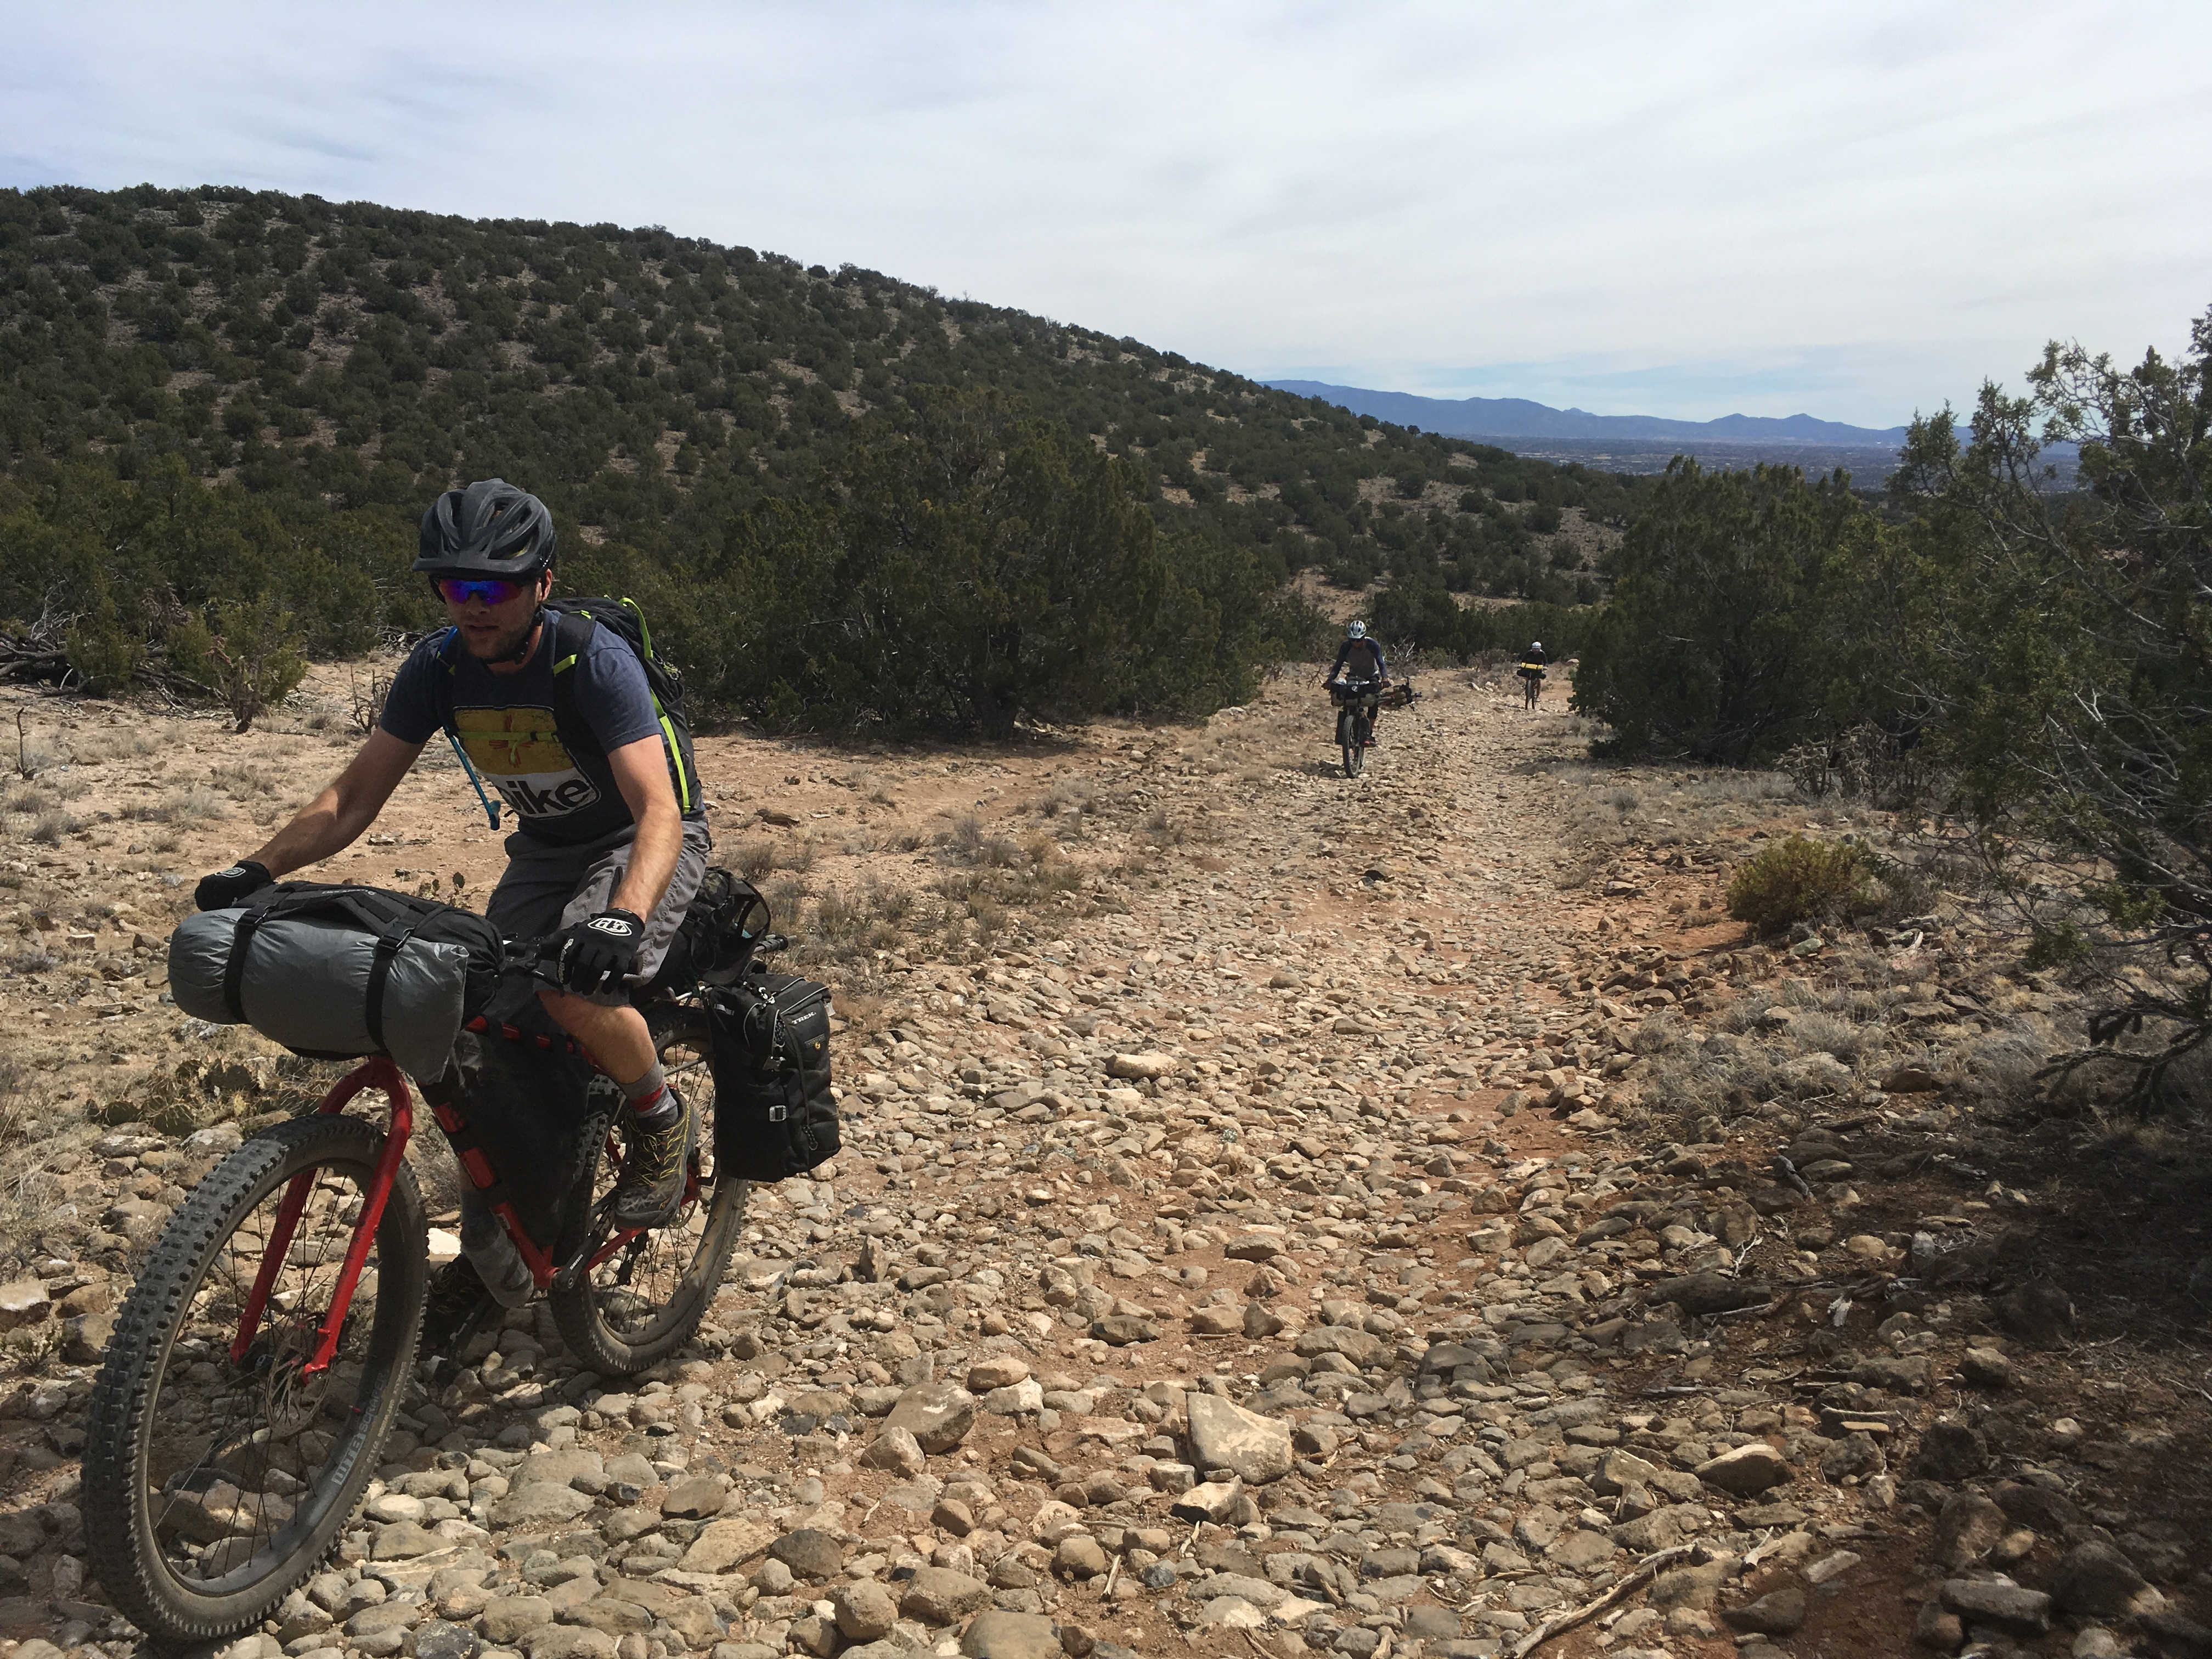 Cyclist on a red bike loaded with gear pedals up a rocky trail hill in the bushy desert and 2 riders trailing behind